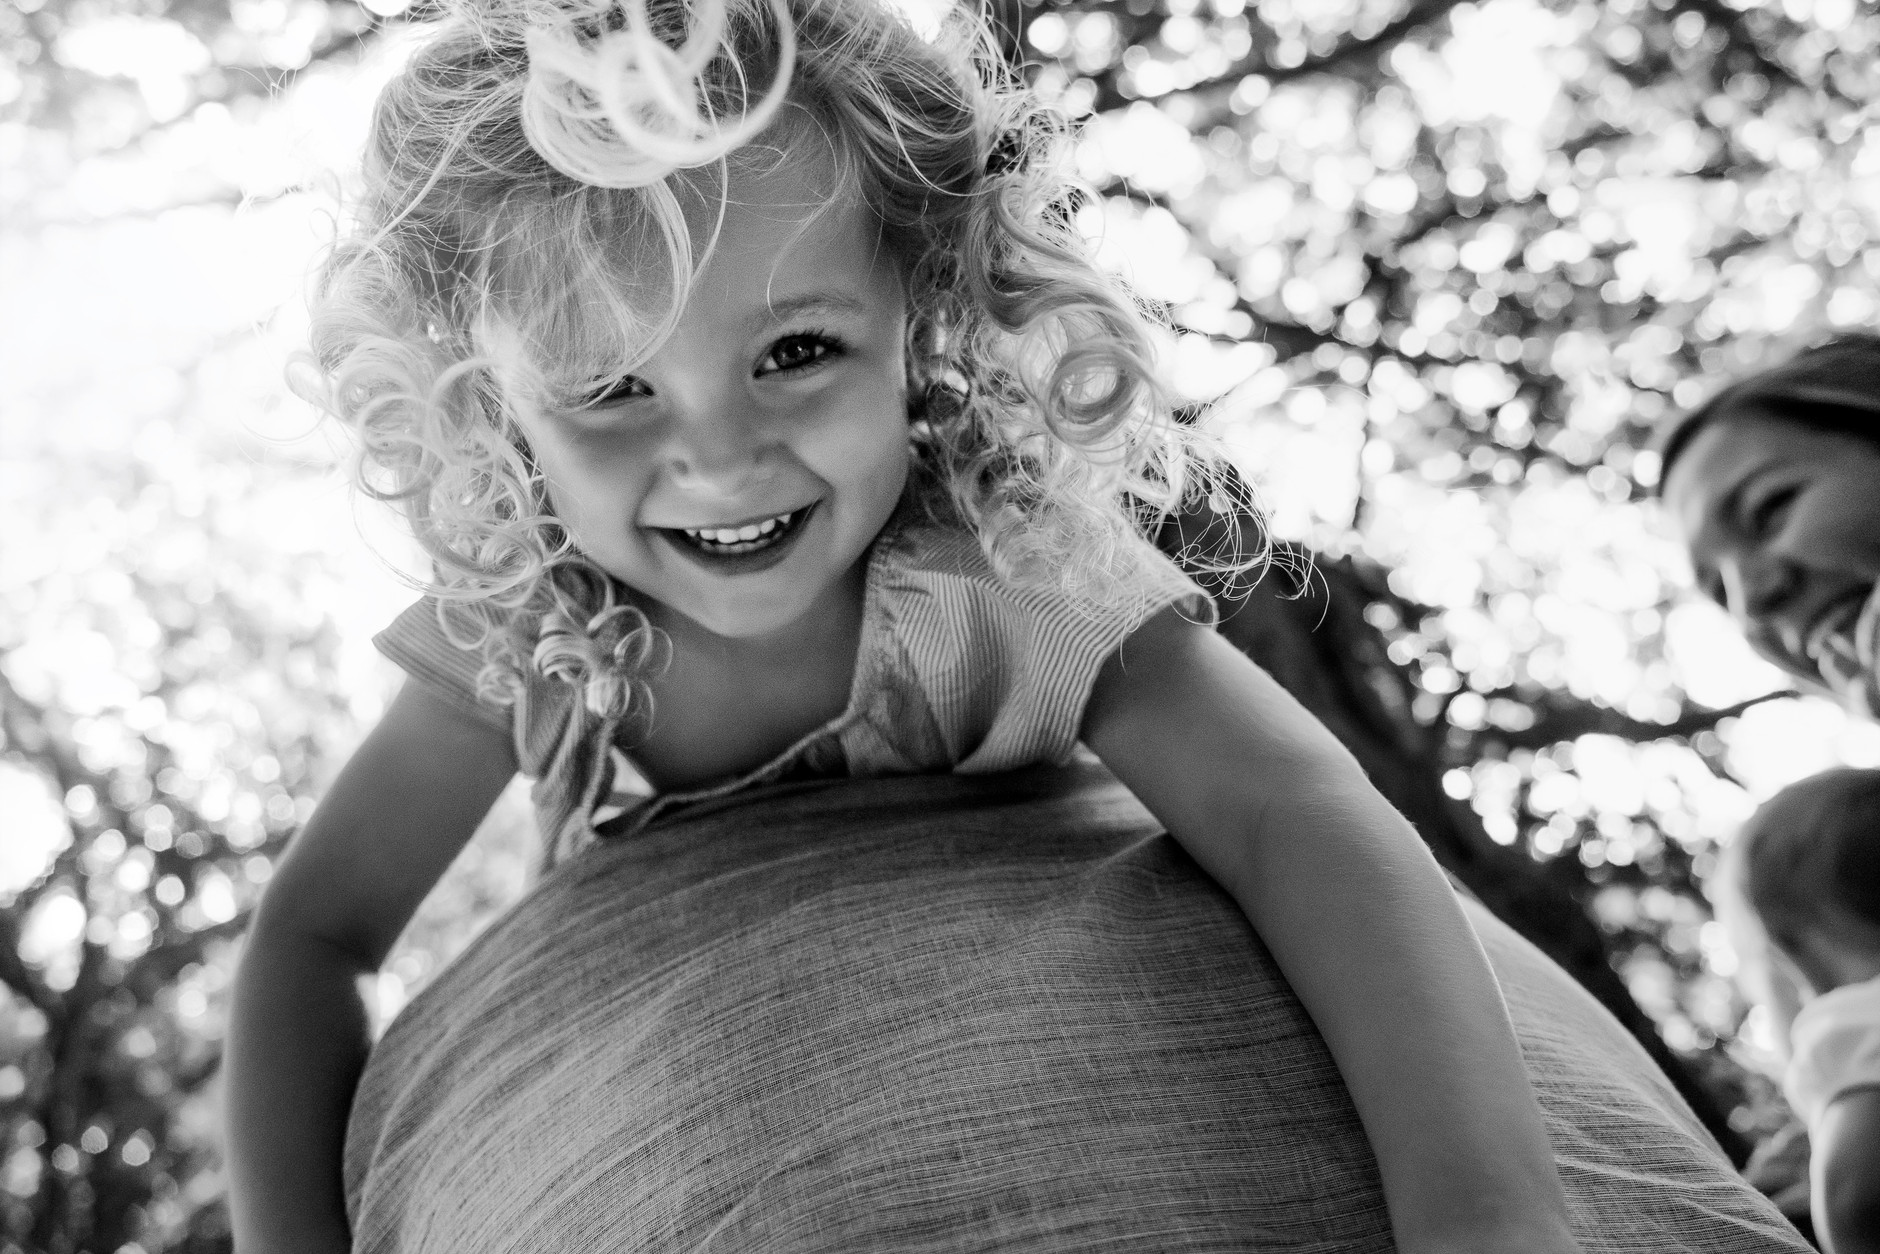 Little girl with blond curly hair laughing and hanging upside down on her father's shoulder